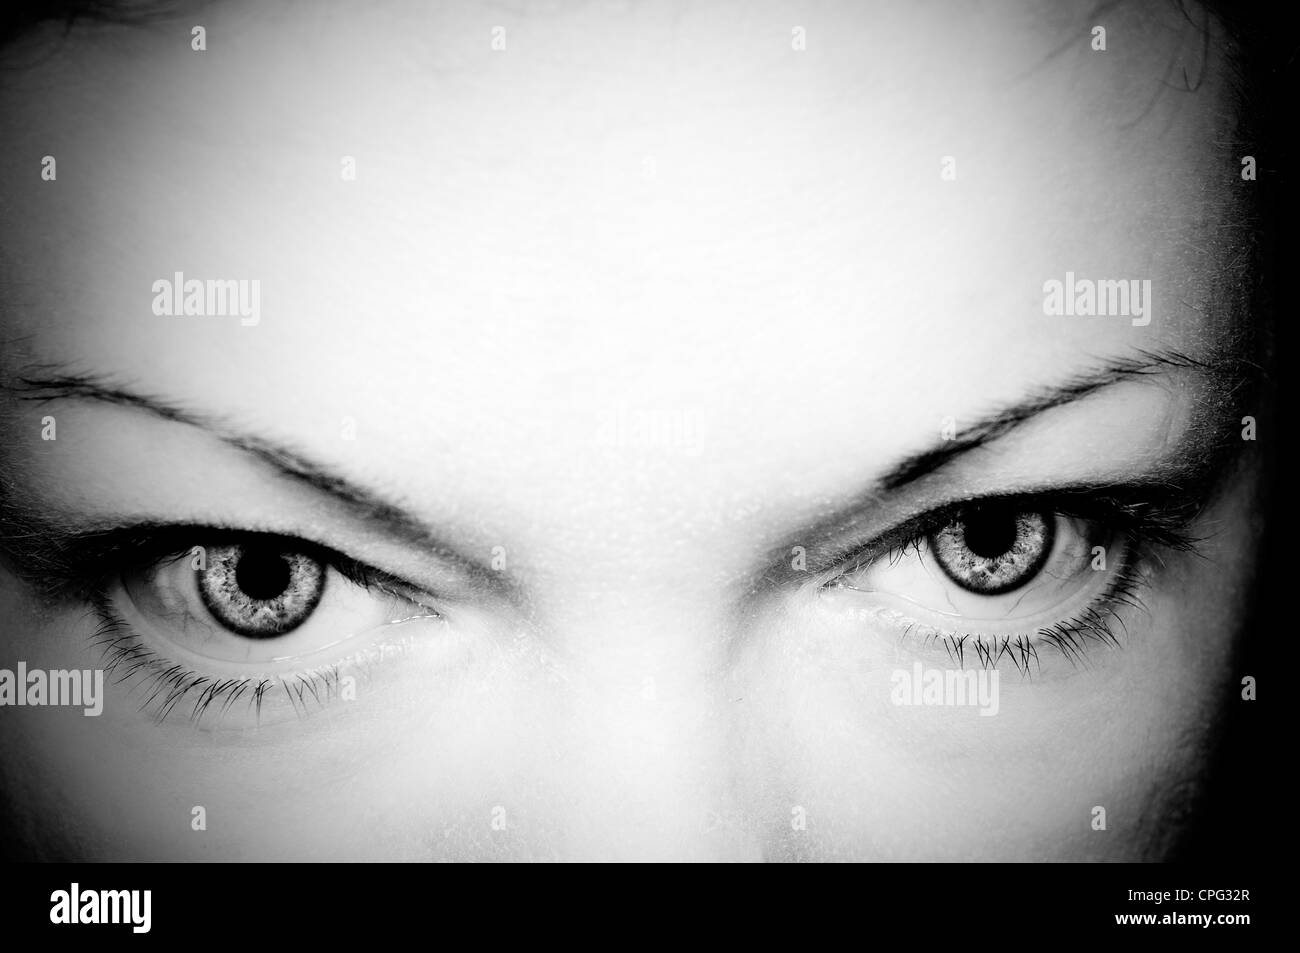 Eyes - Stock Image